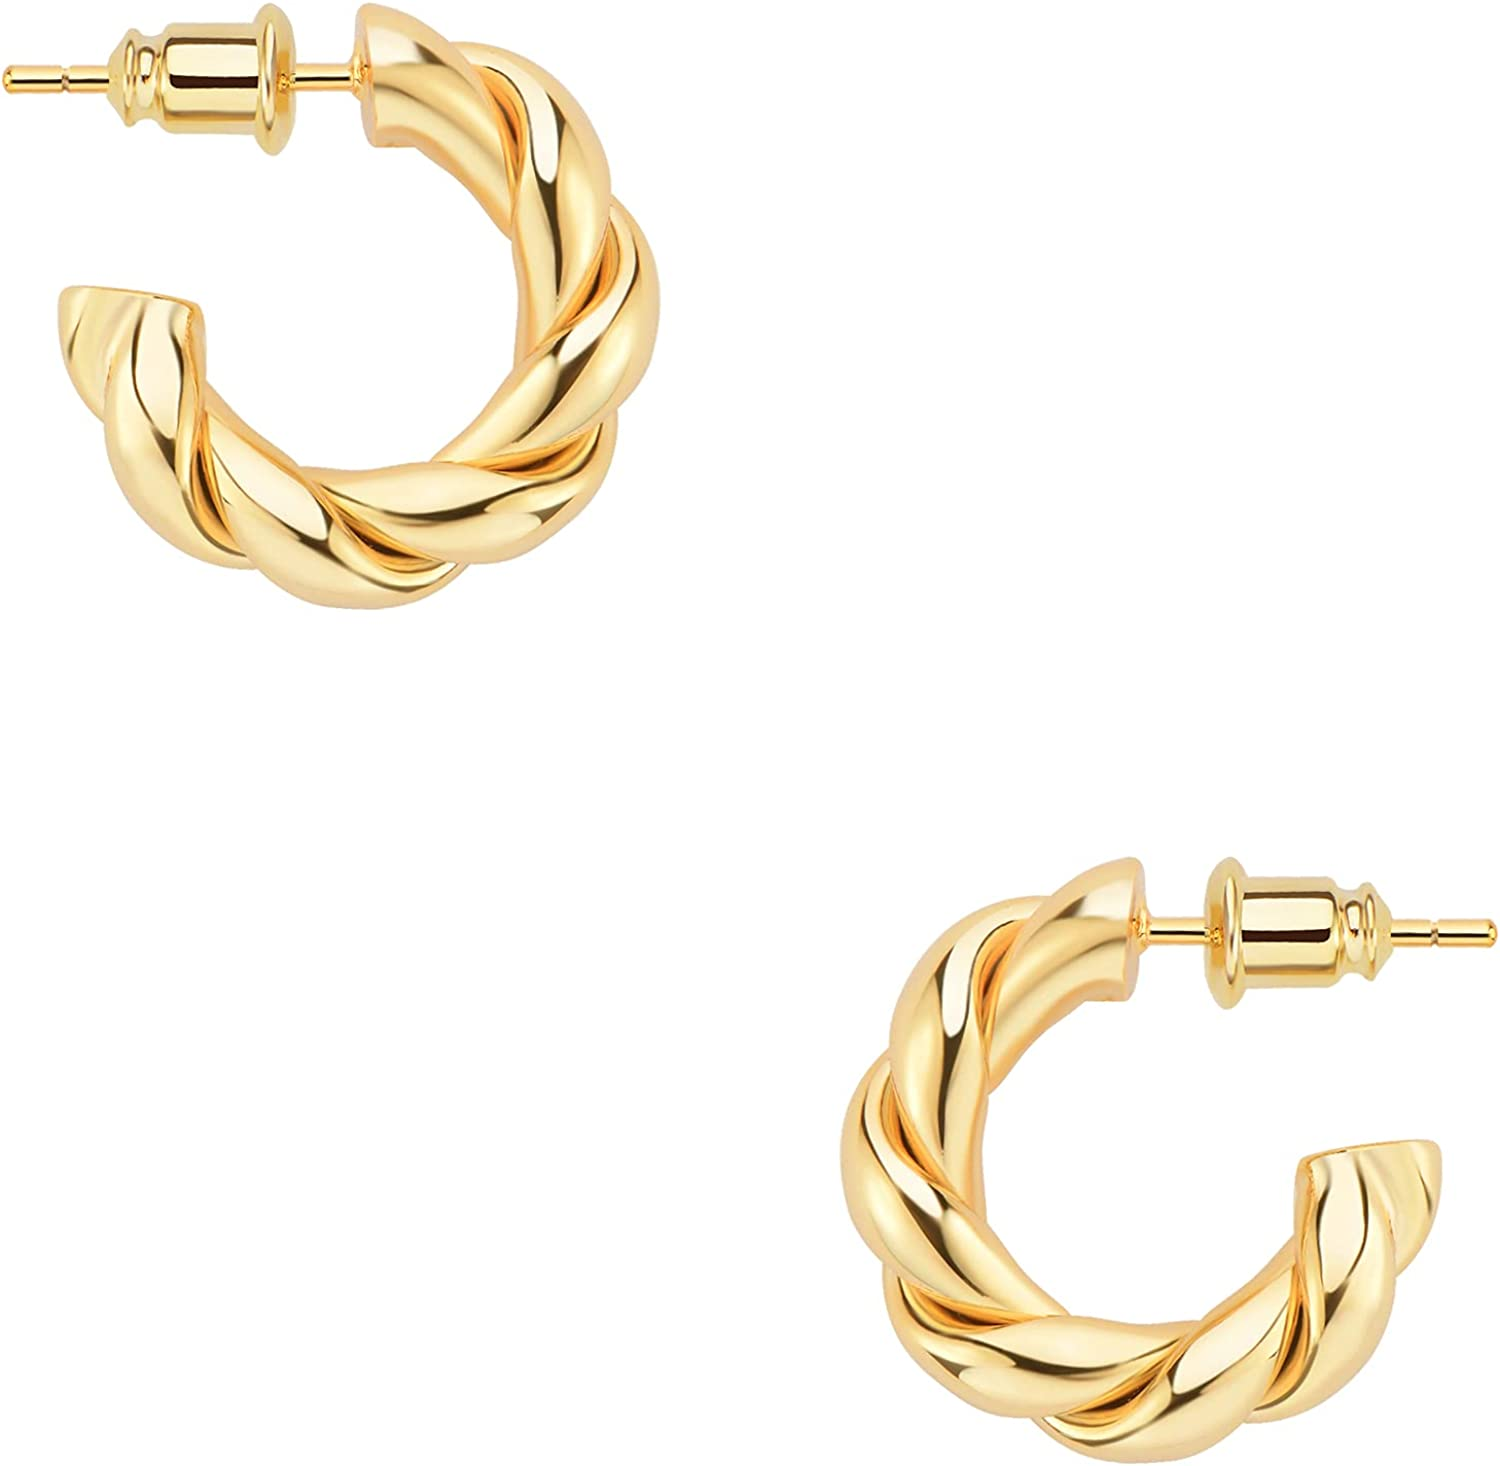 Wowshow Gold Hoop Earrings 14k Gold Plated Twisted Rope Round Ch